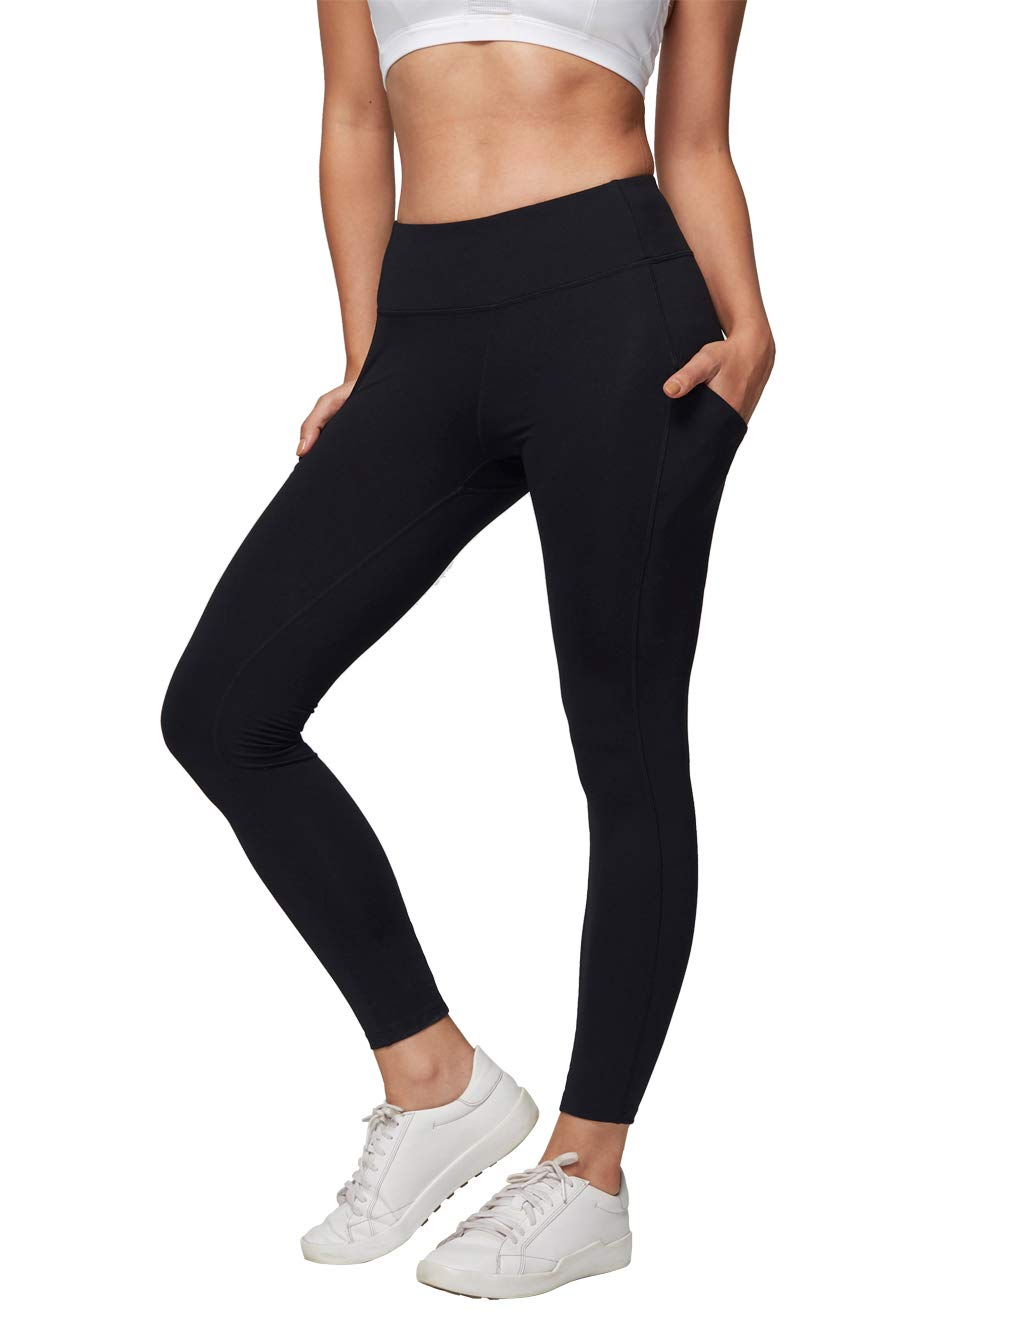 AJISAI Women High Waist Leggings with Pockets,Tummy Control Workout Running Stretch Yoga Pants Color Black Size S